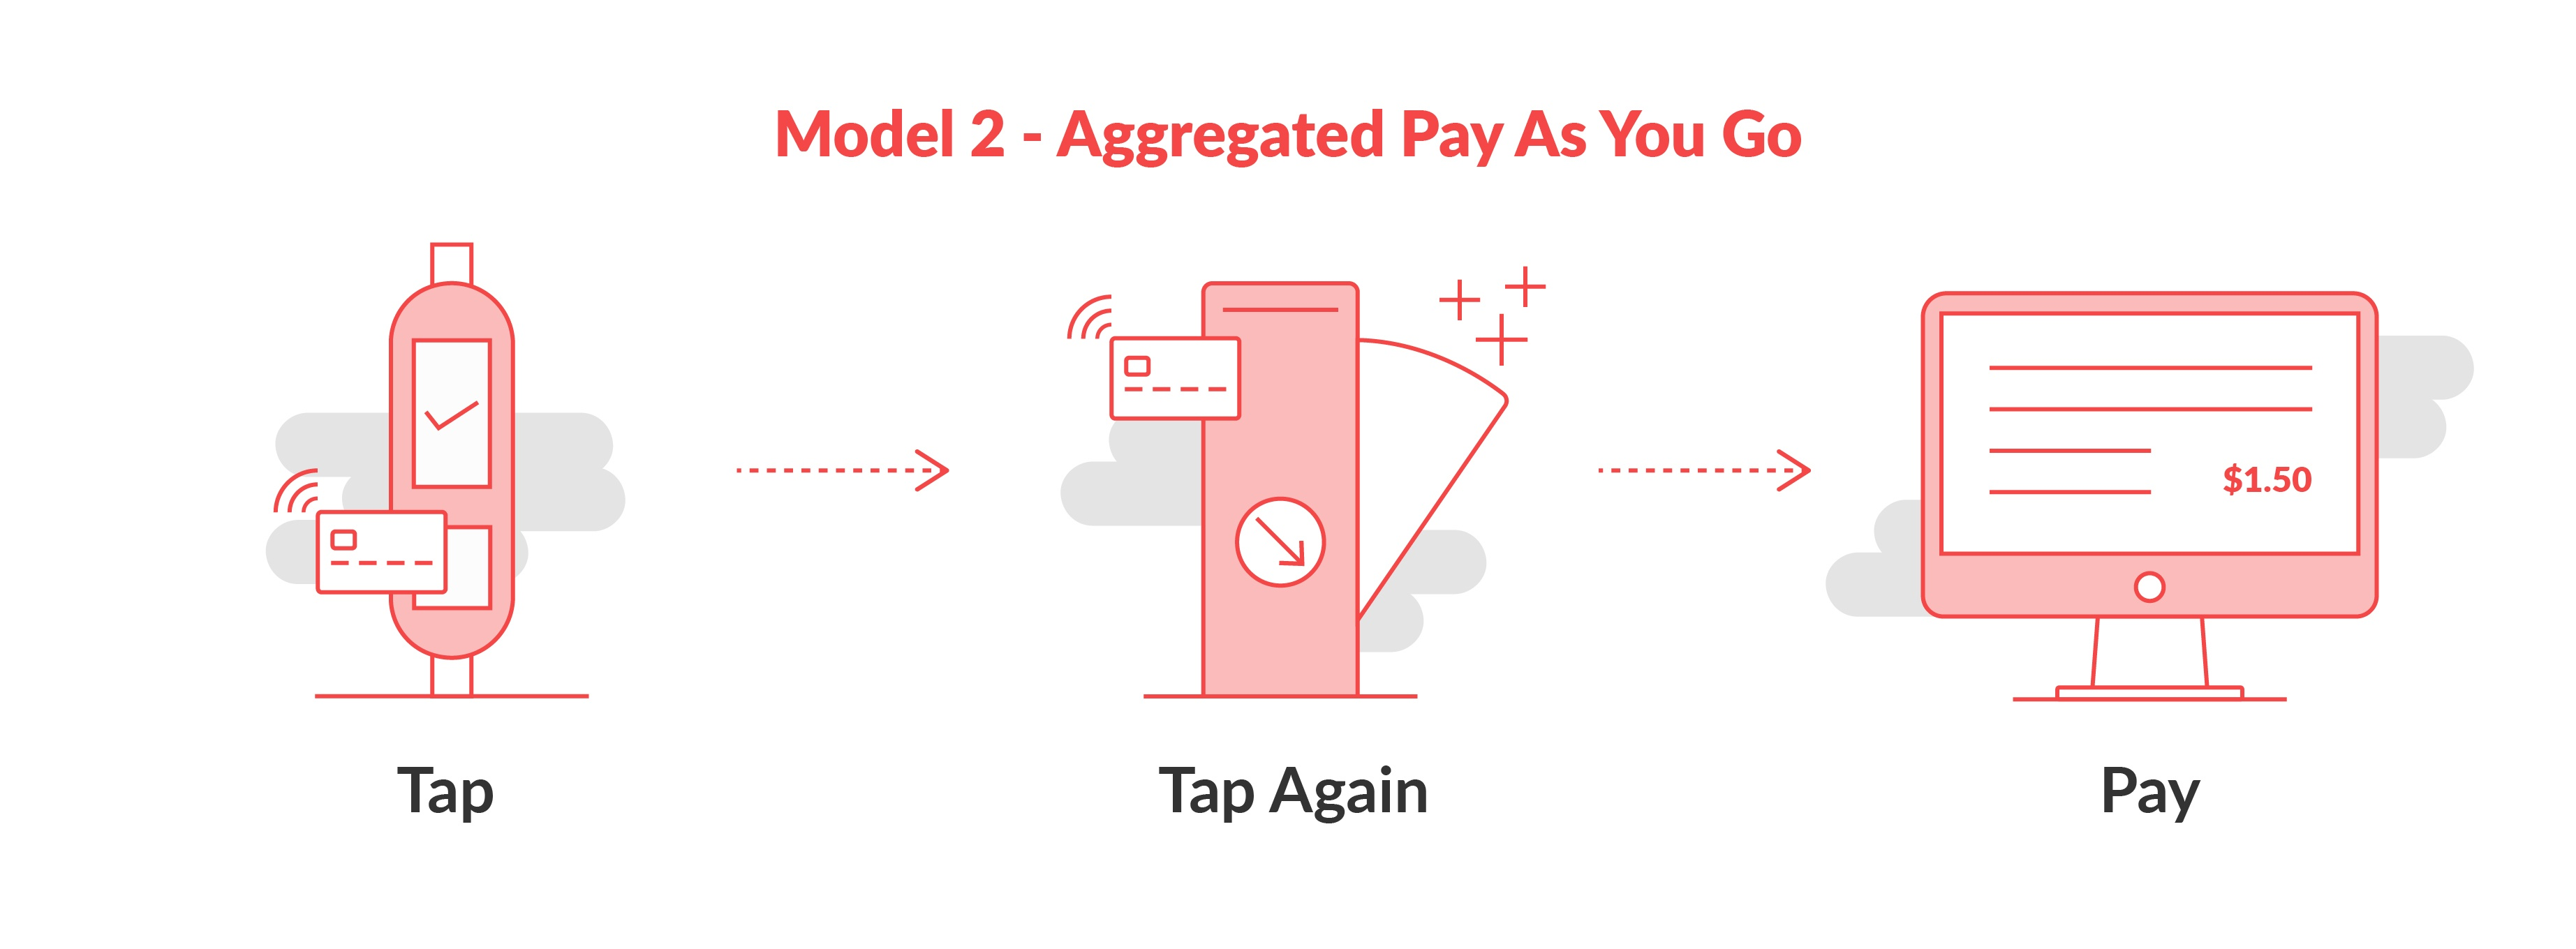 model-2-aggregated-pay-as-you-go-1.jpg